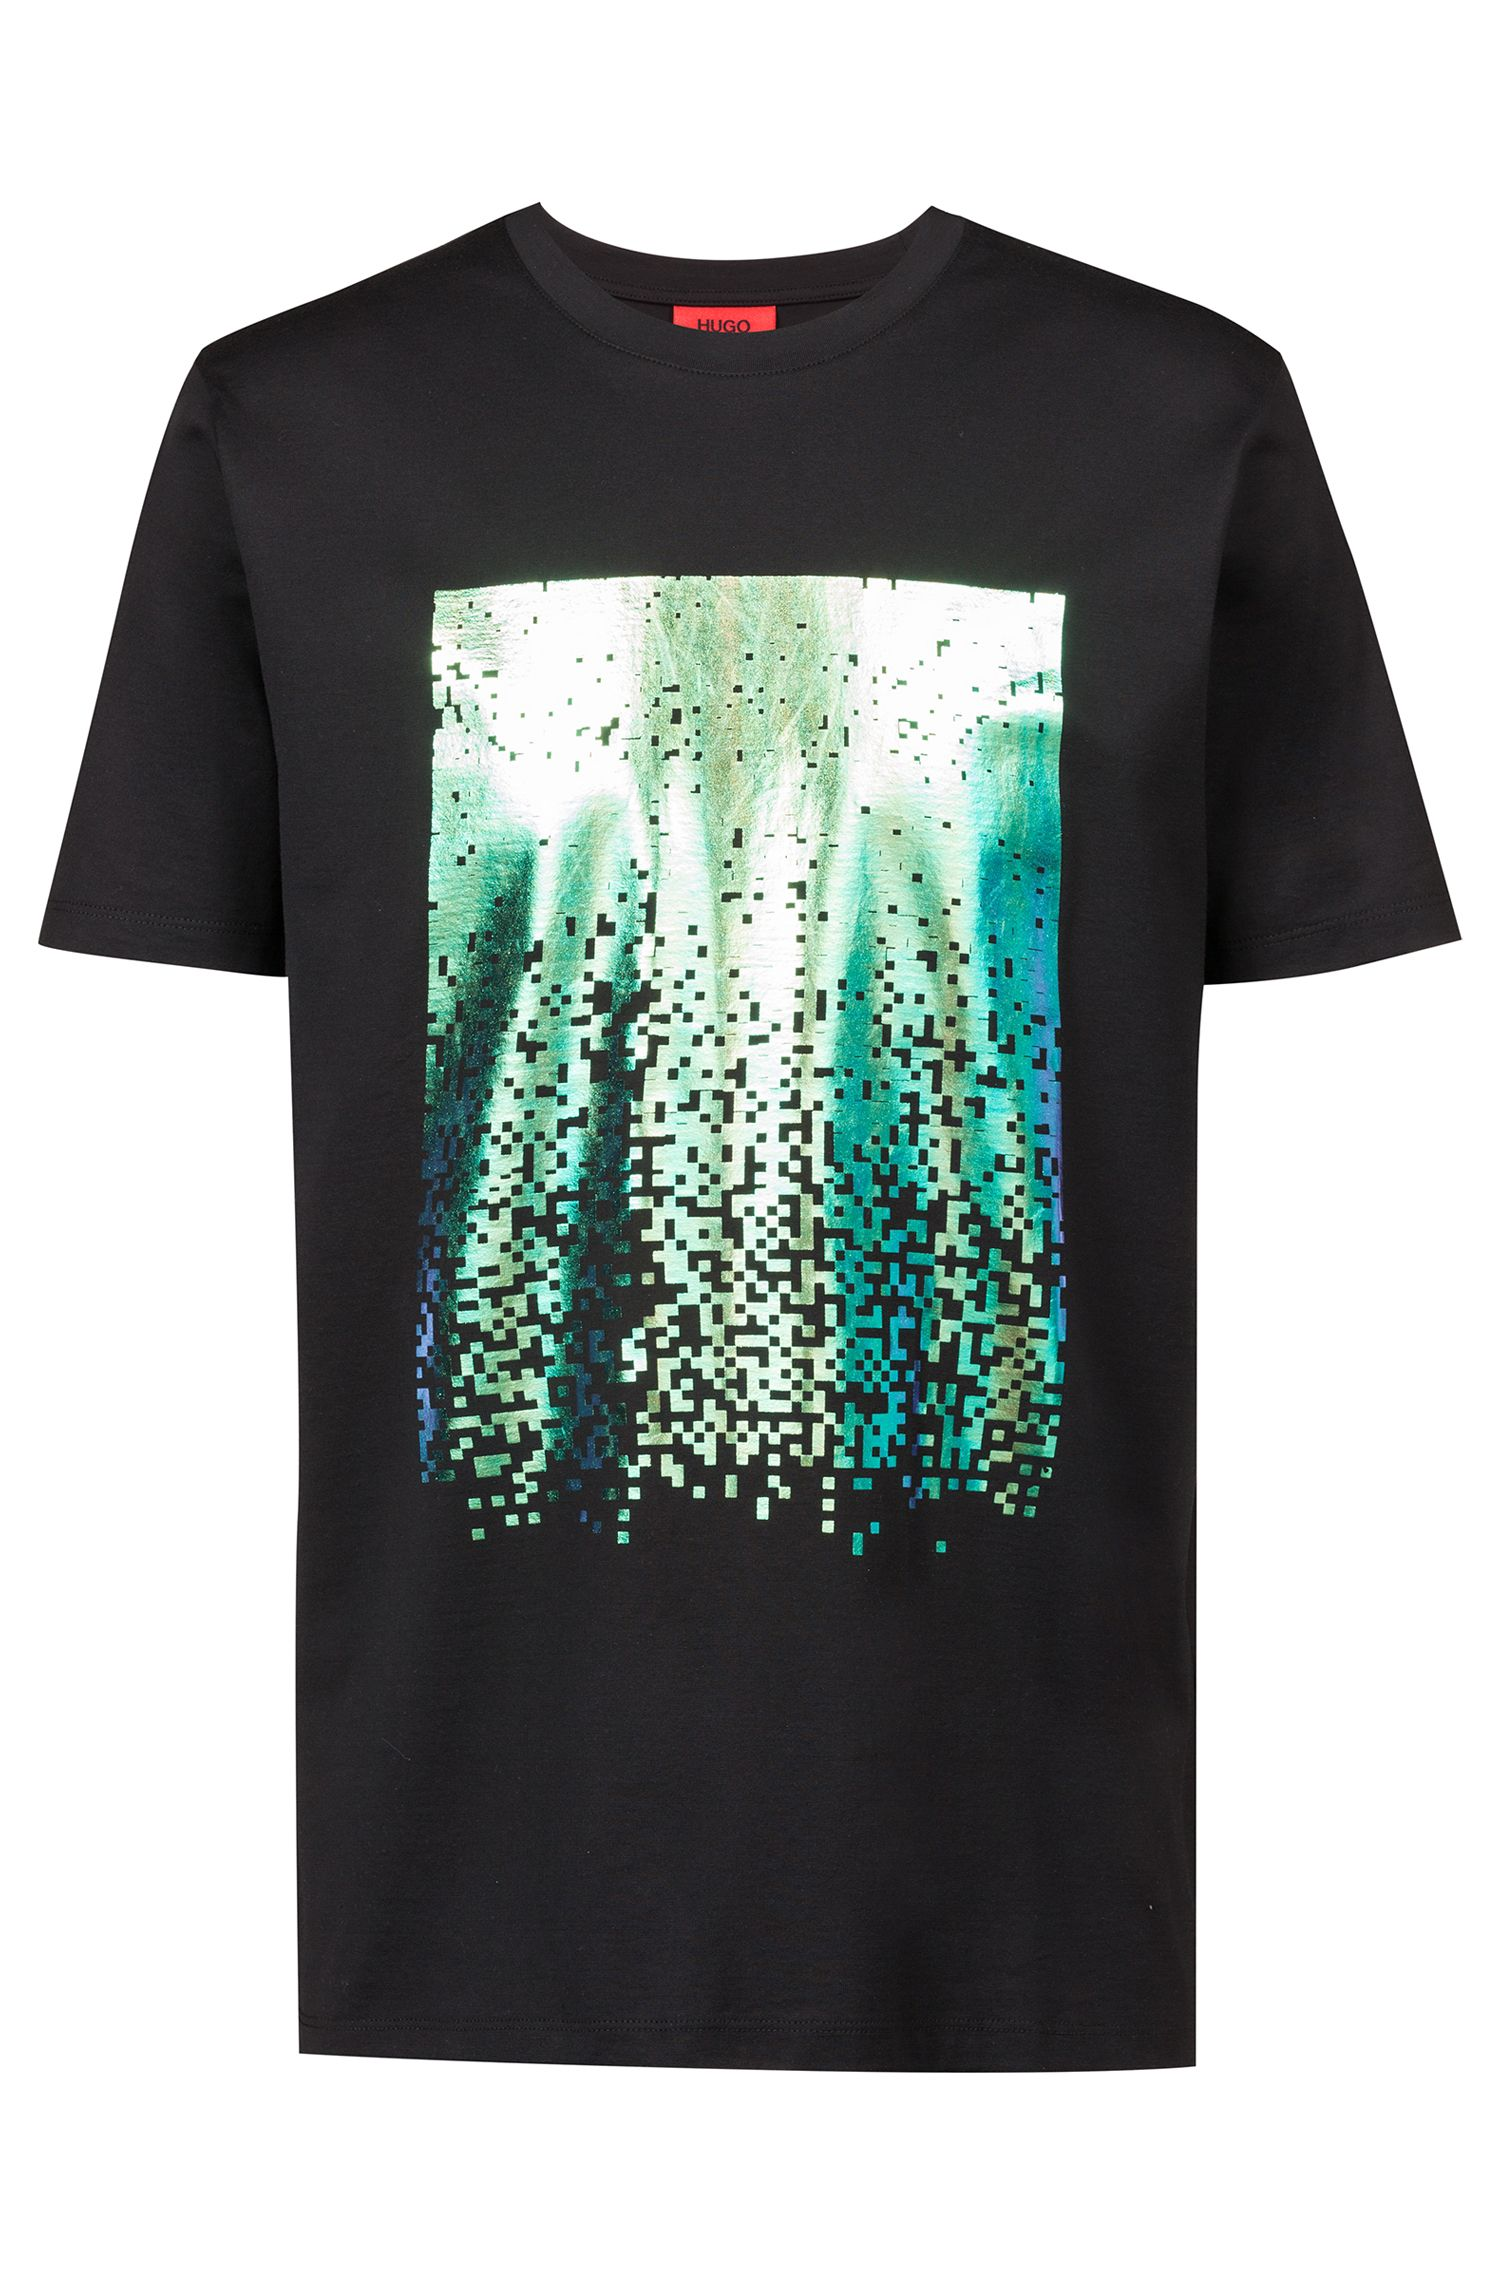 Crew-neck T-shirt in cotton with abstract print, Black